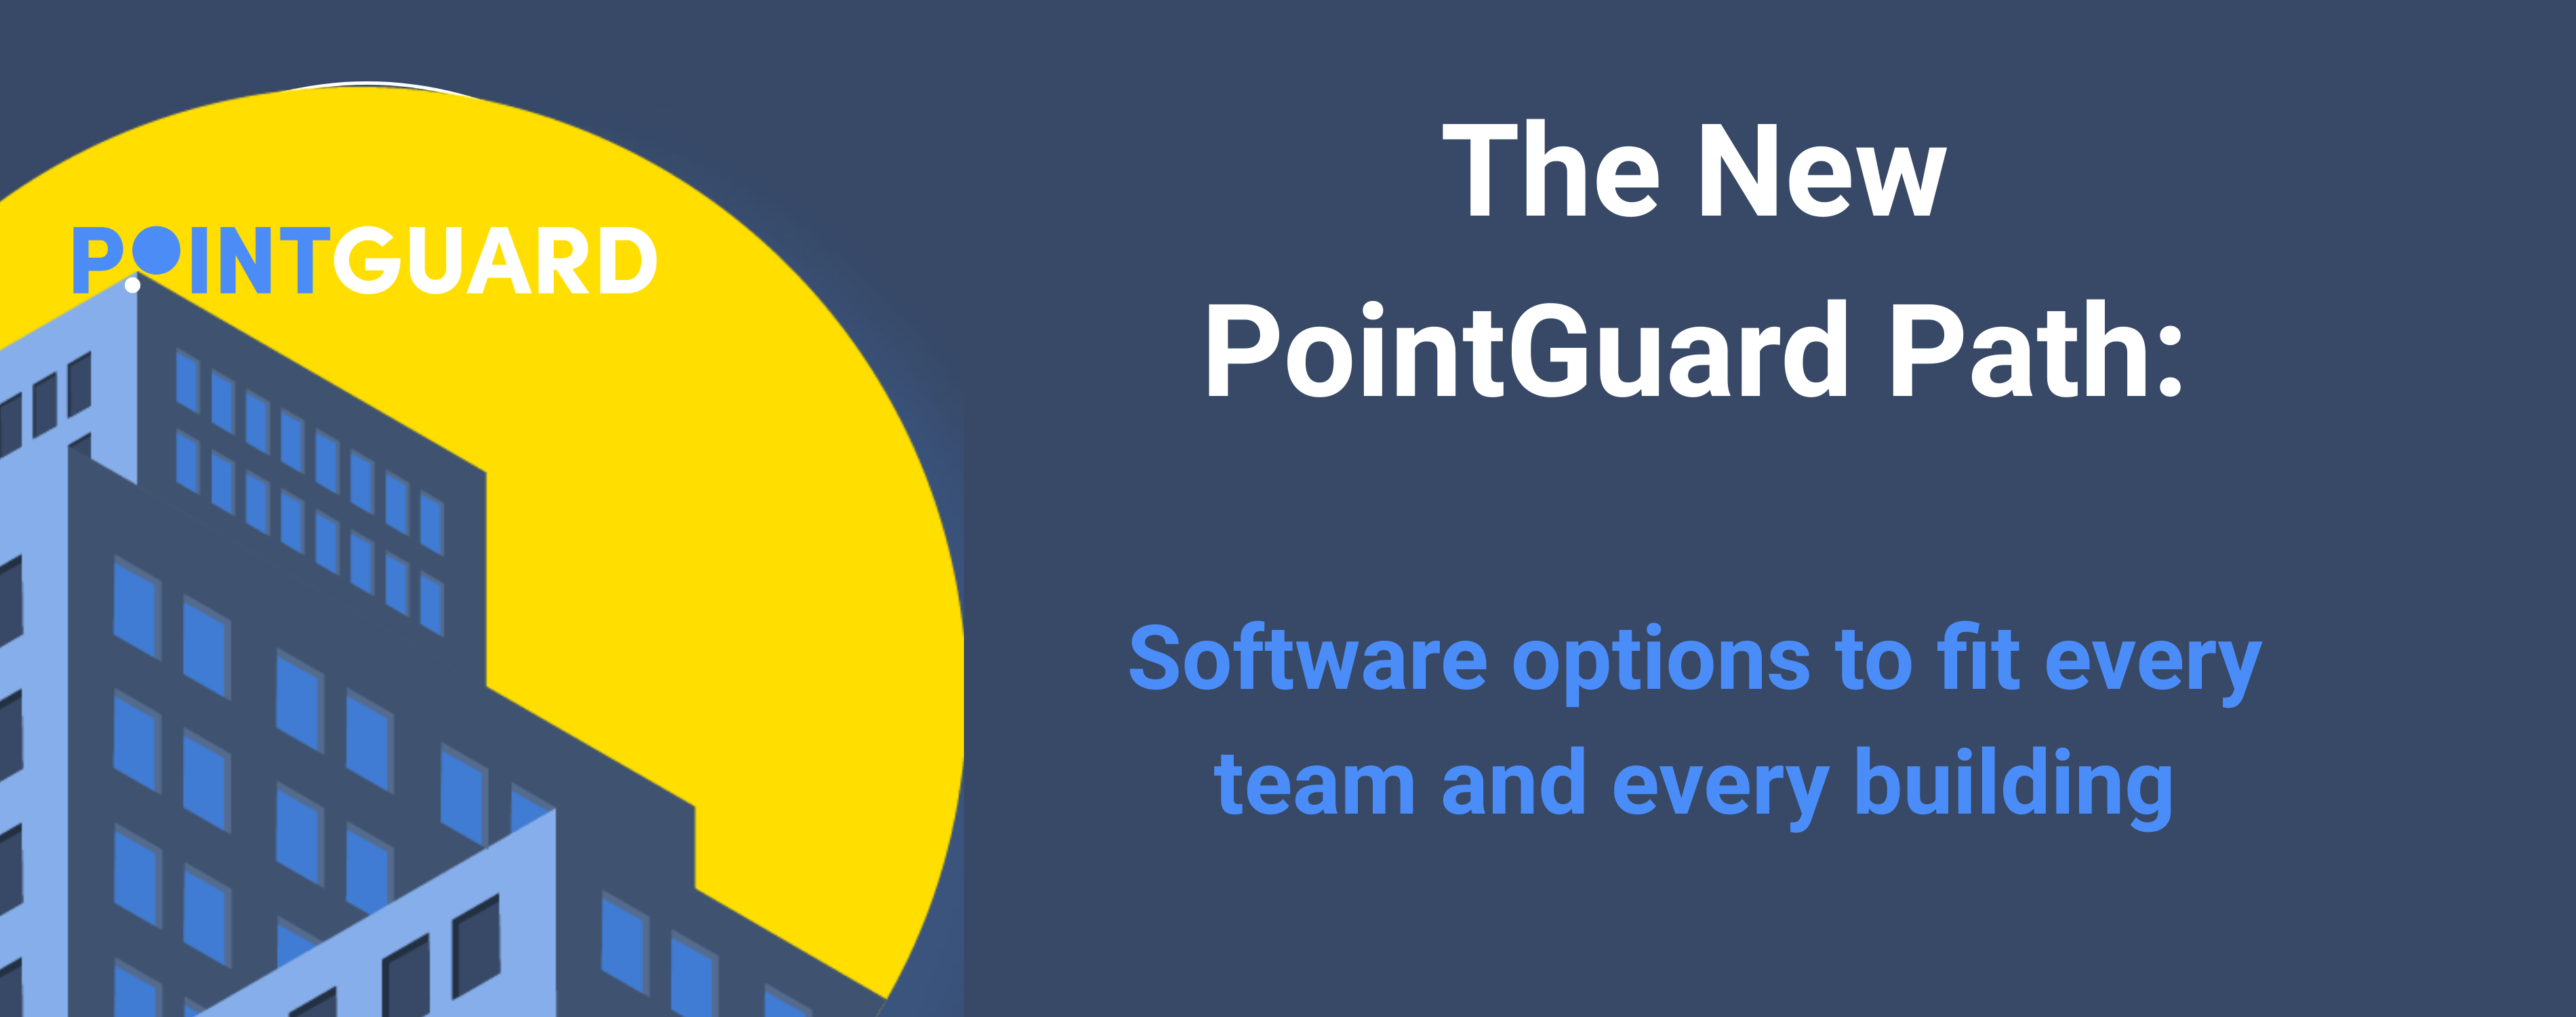 PointGuard Announces New Services with Choose-Your-Goals Levels